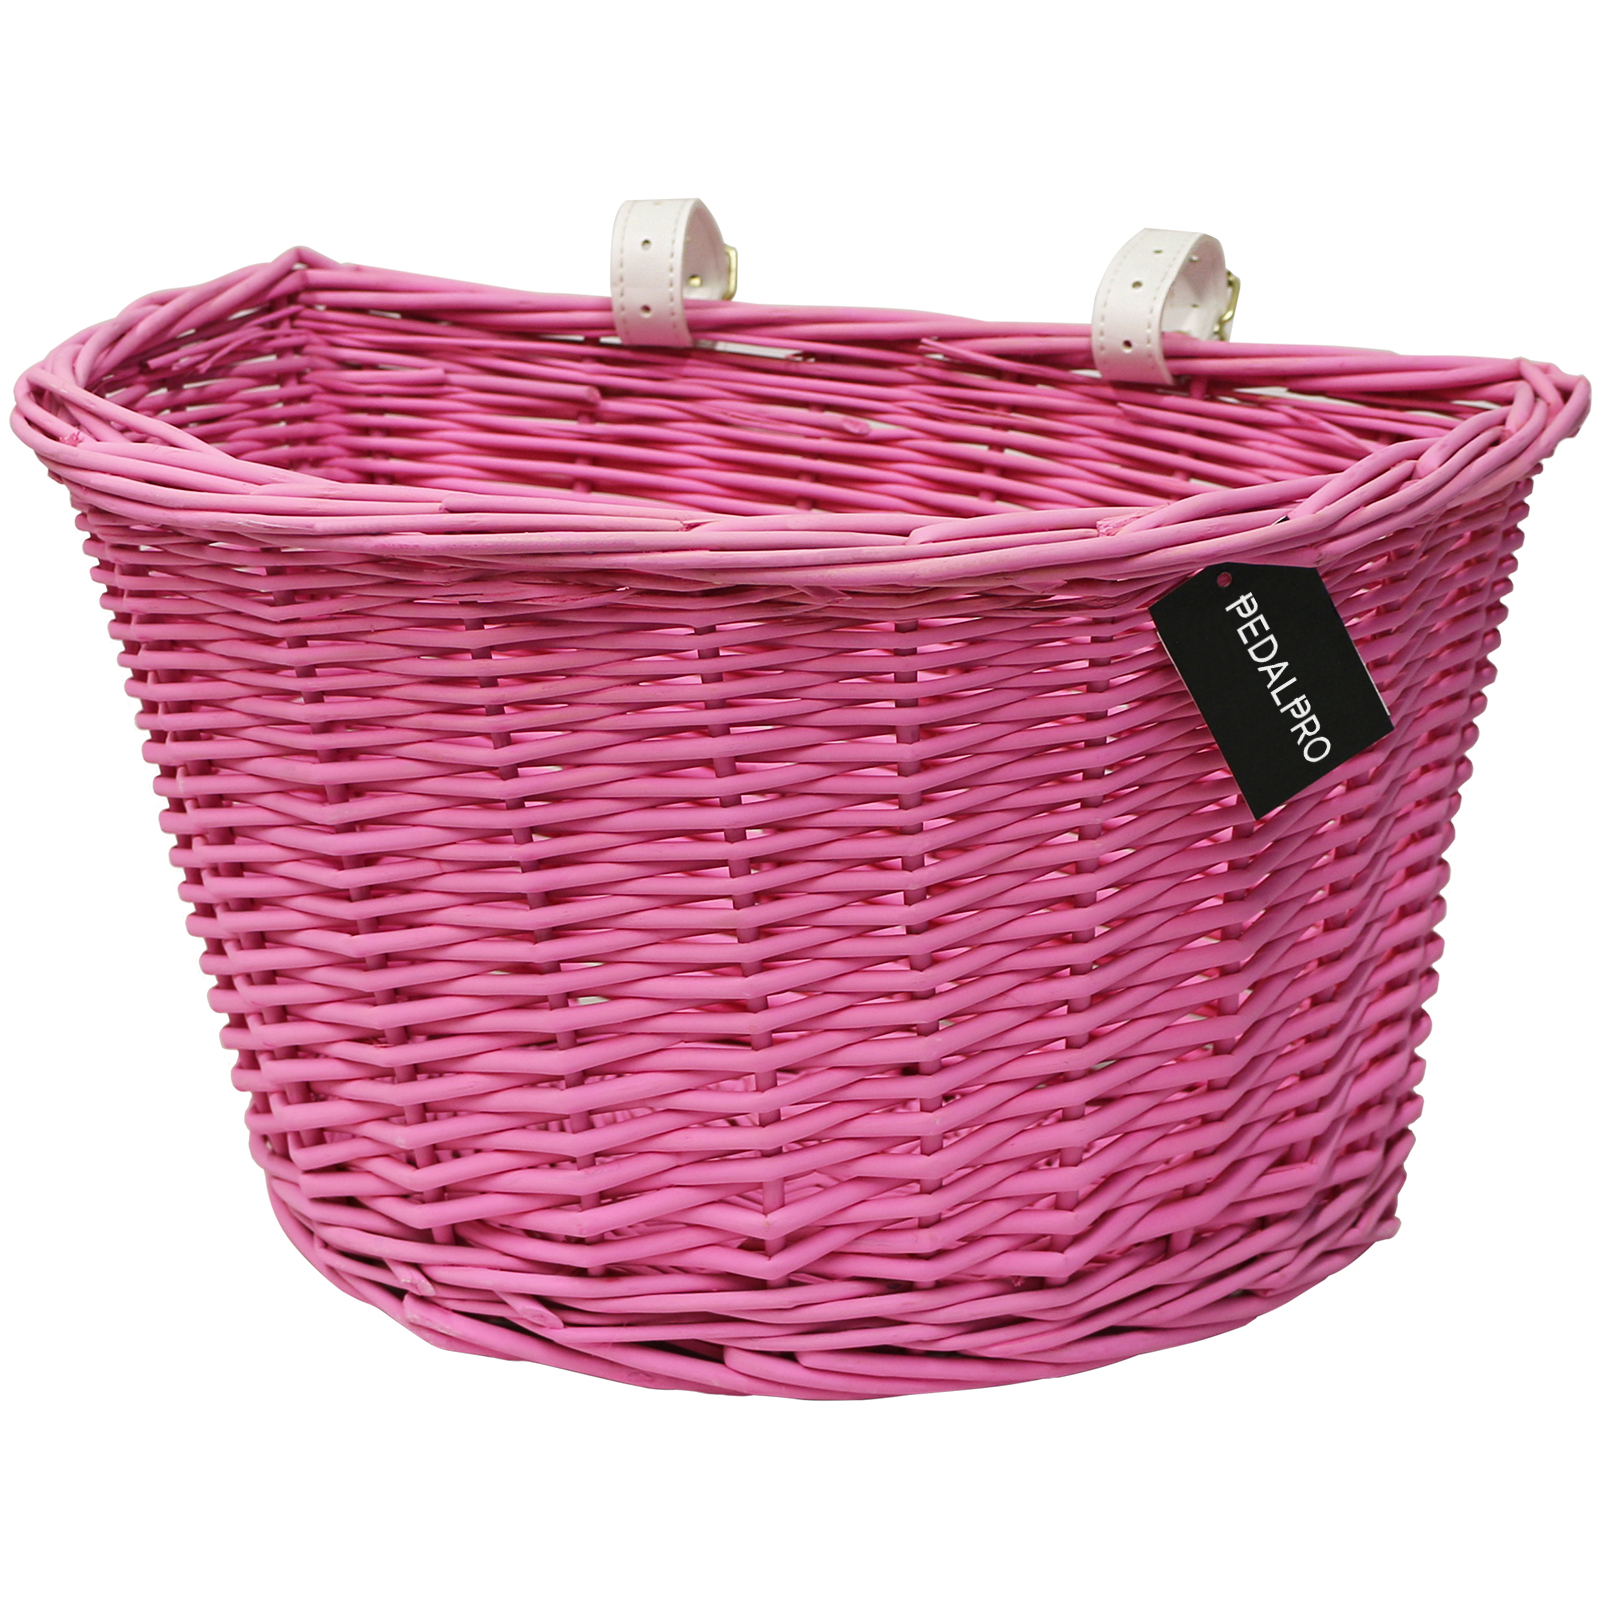 Pedalpro Pink Wicker Bicycle Basket With Leather Straps Bike Cycle